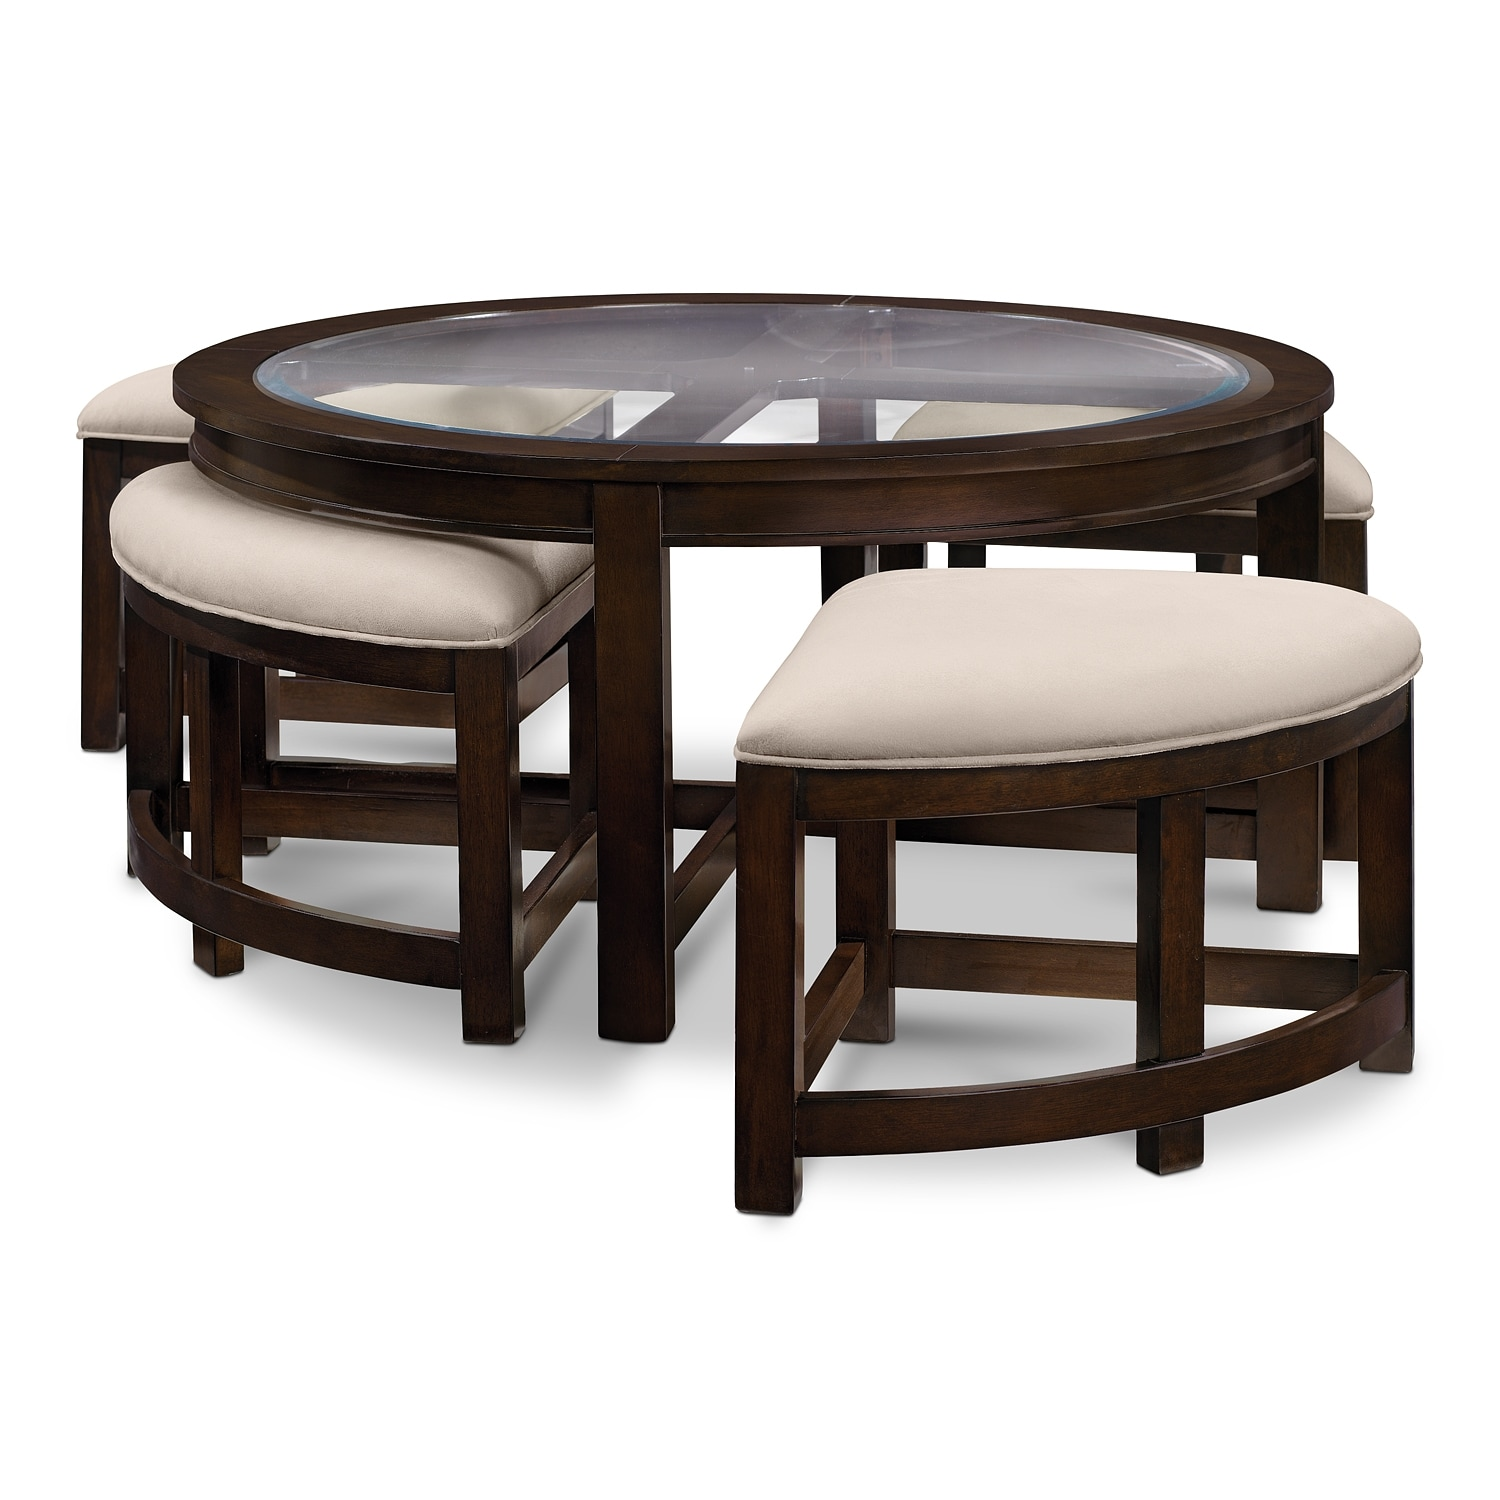 [Four Corners Cocktail Table w/ 4 Benches]